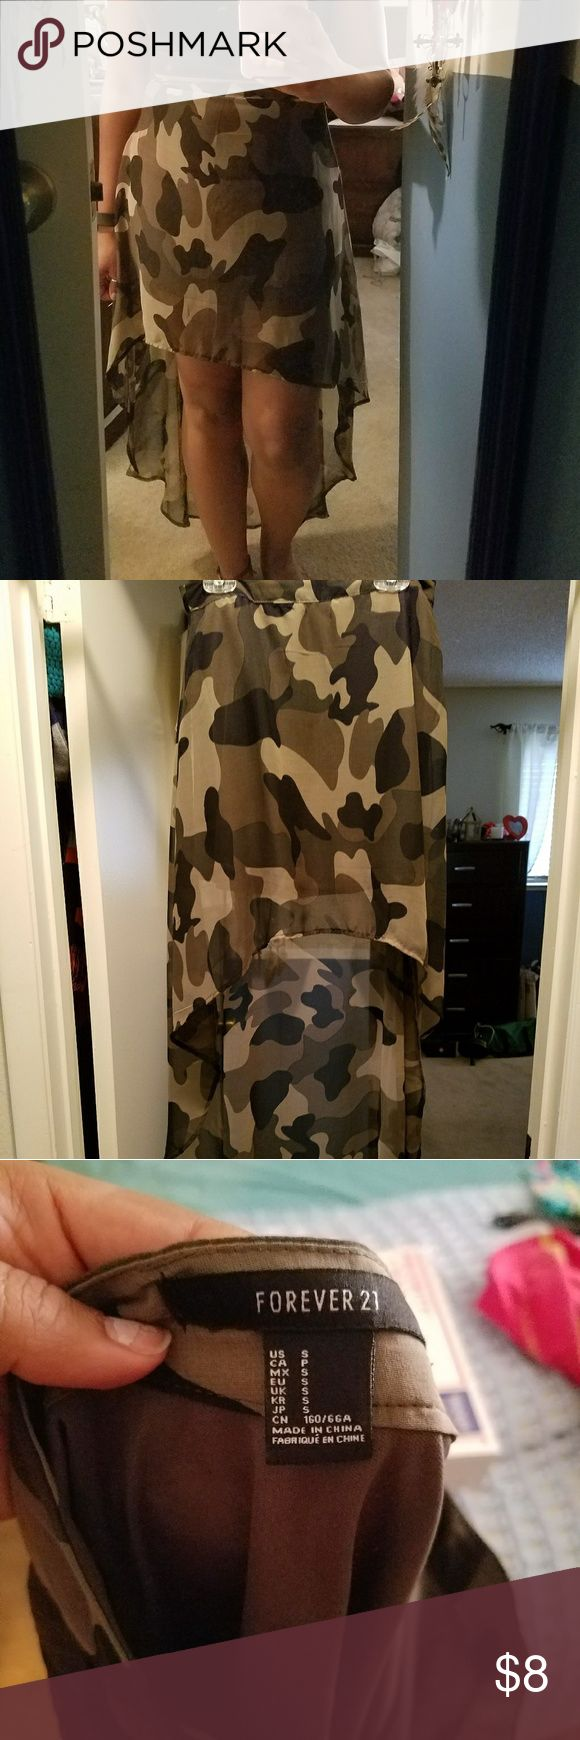 Camo high-low asymmetrical skirt Camo high-low asymmetrical skirt  The last photo is showing the short lining on the inside of the skirt. Forever 21 Skirts High Low